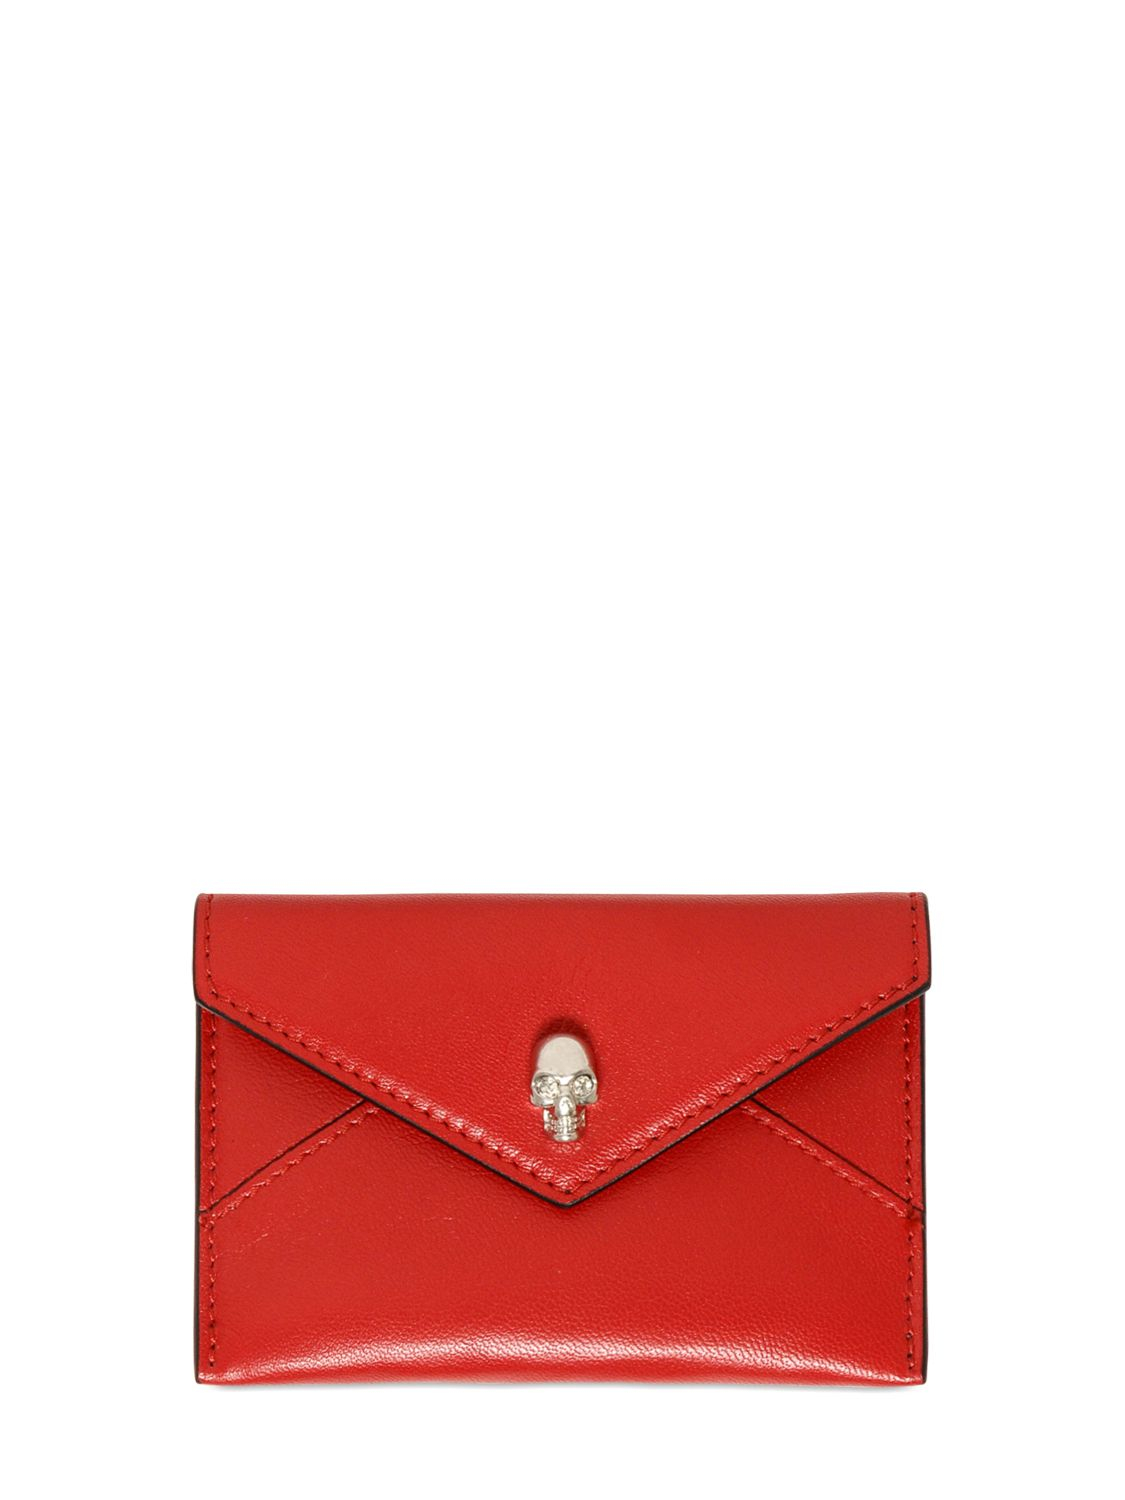 Lyst - Alexander Mcqueen Skull Leather Business Card Holder in Red